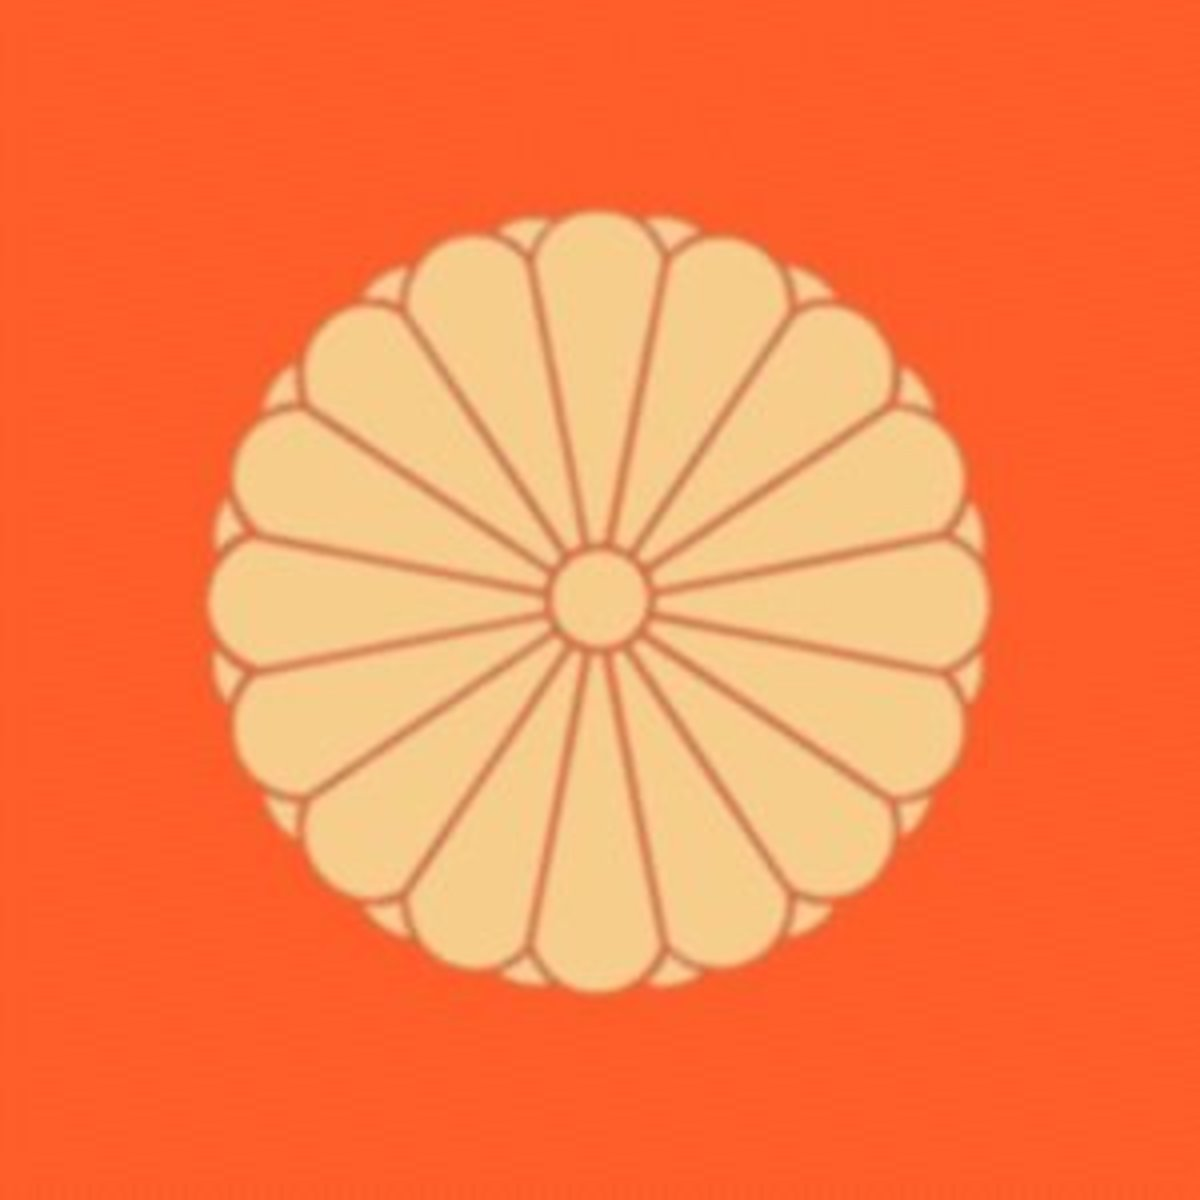 The Imperial Seal of Japan